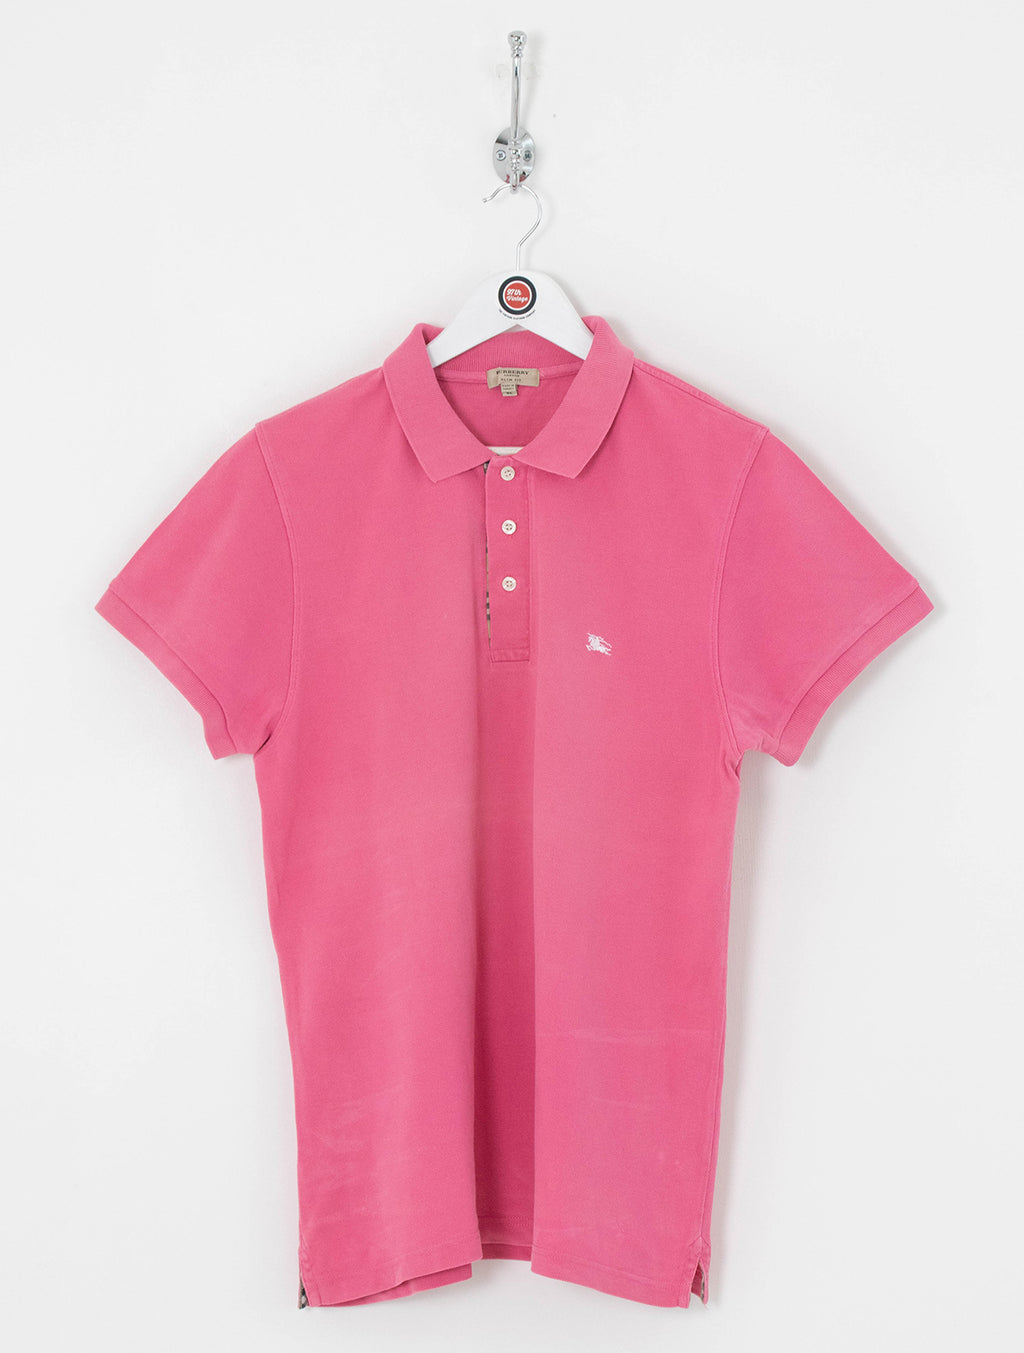 Burberry Polo Shirt (L)